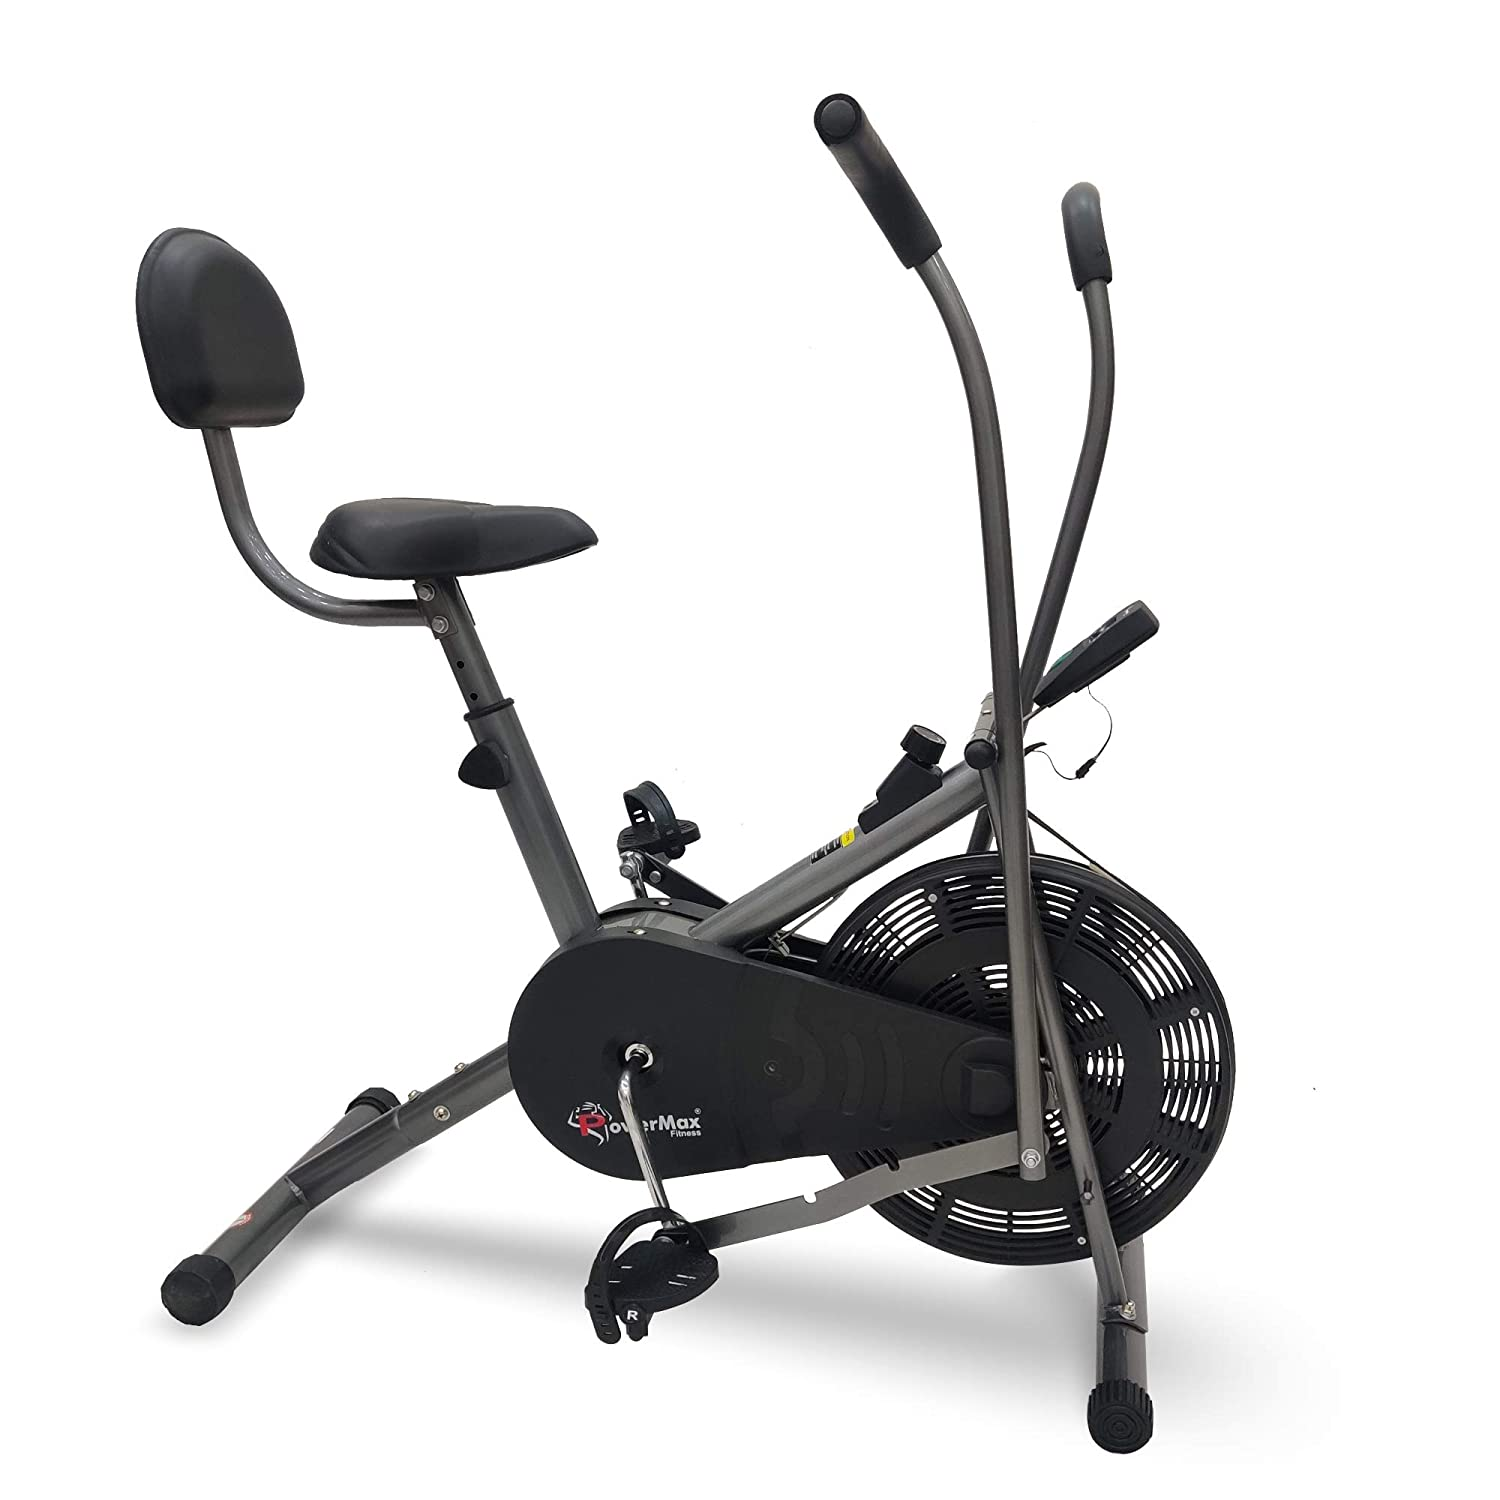 PowerMax Fitness BU-201 Air Bike Exerciser For Thigh Reducing Workout at Home